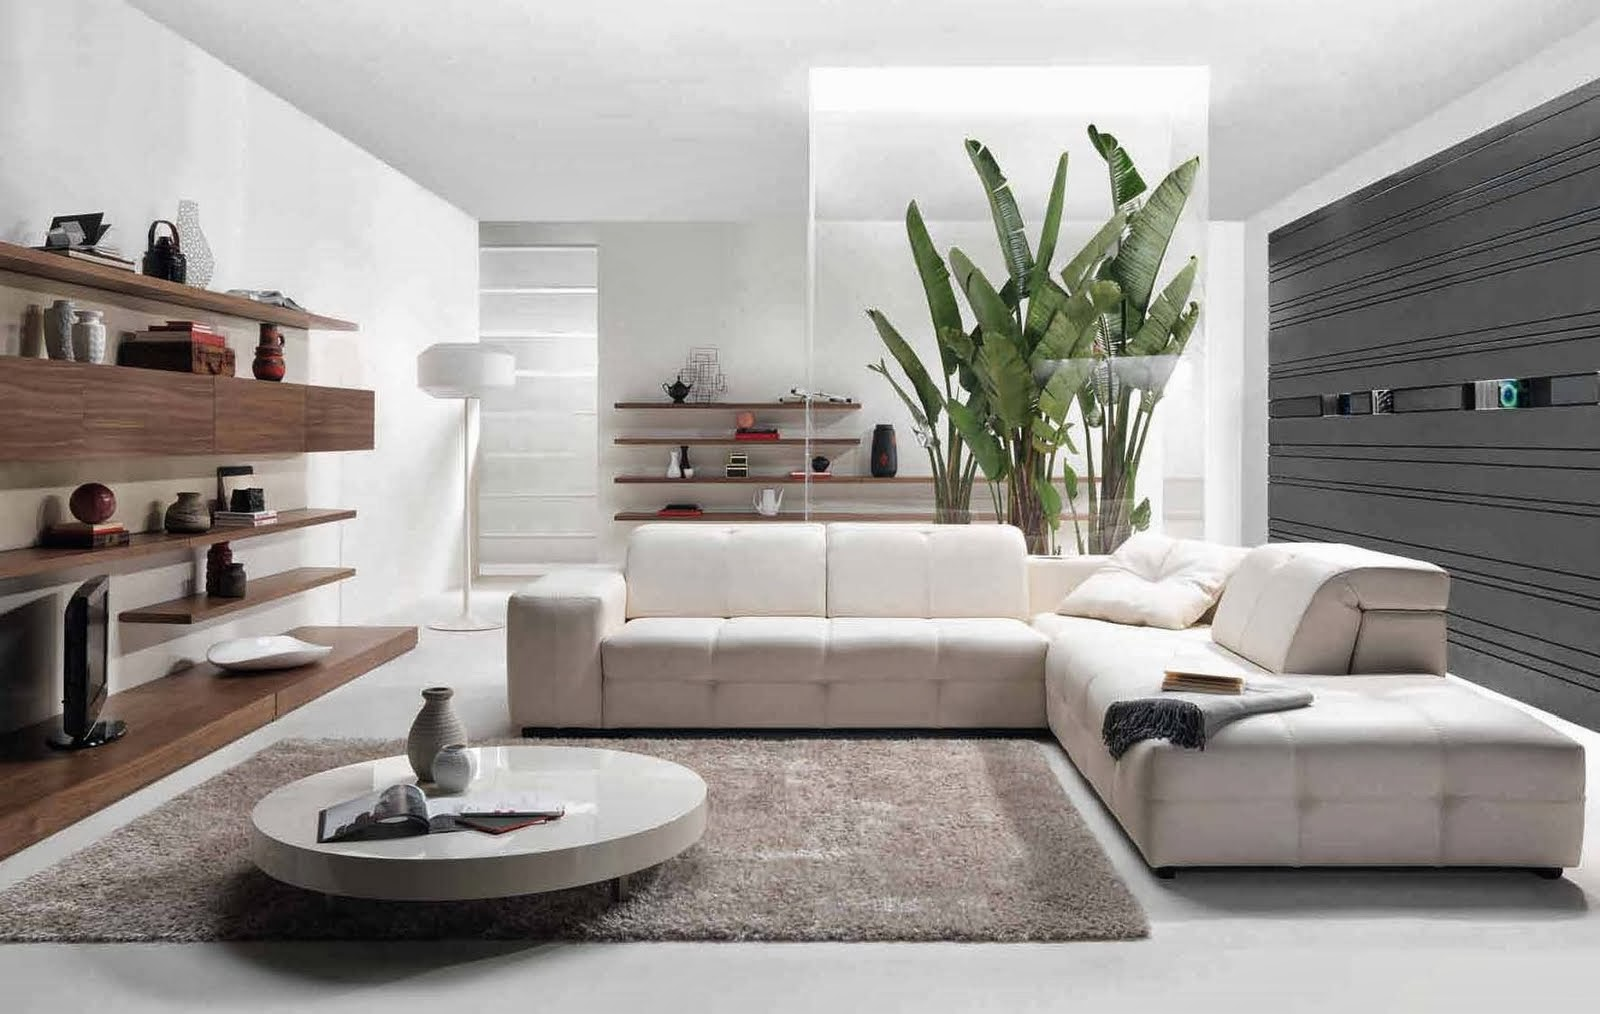 Modern furniture and interior design for a living room.